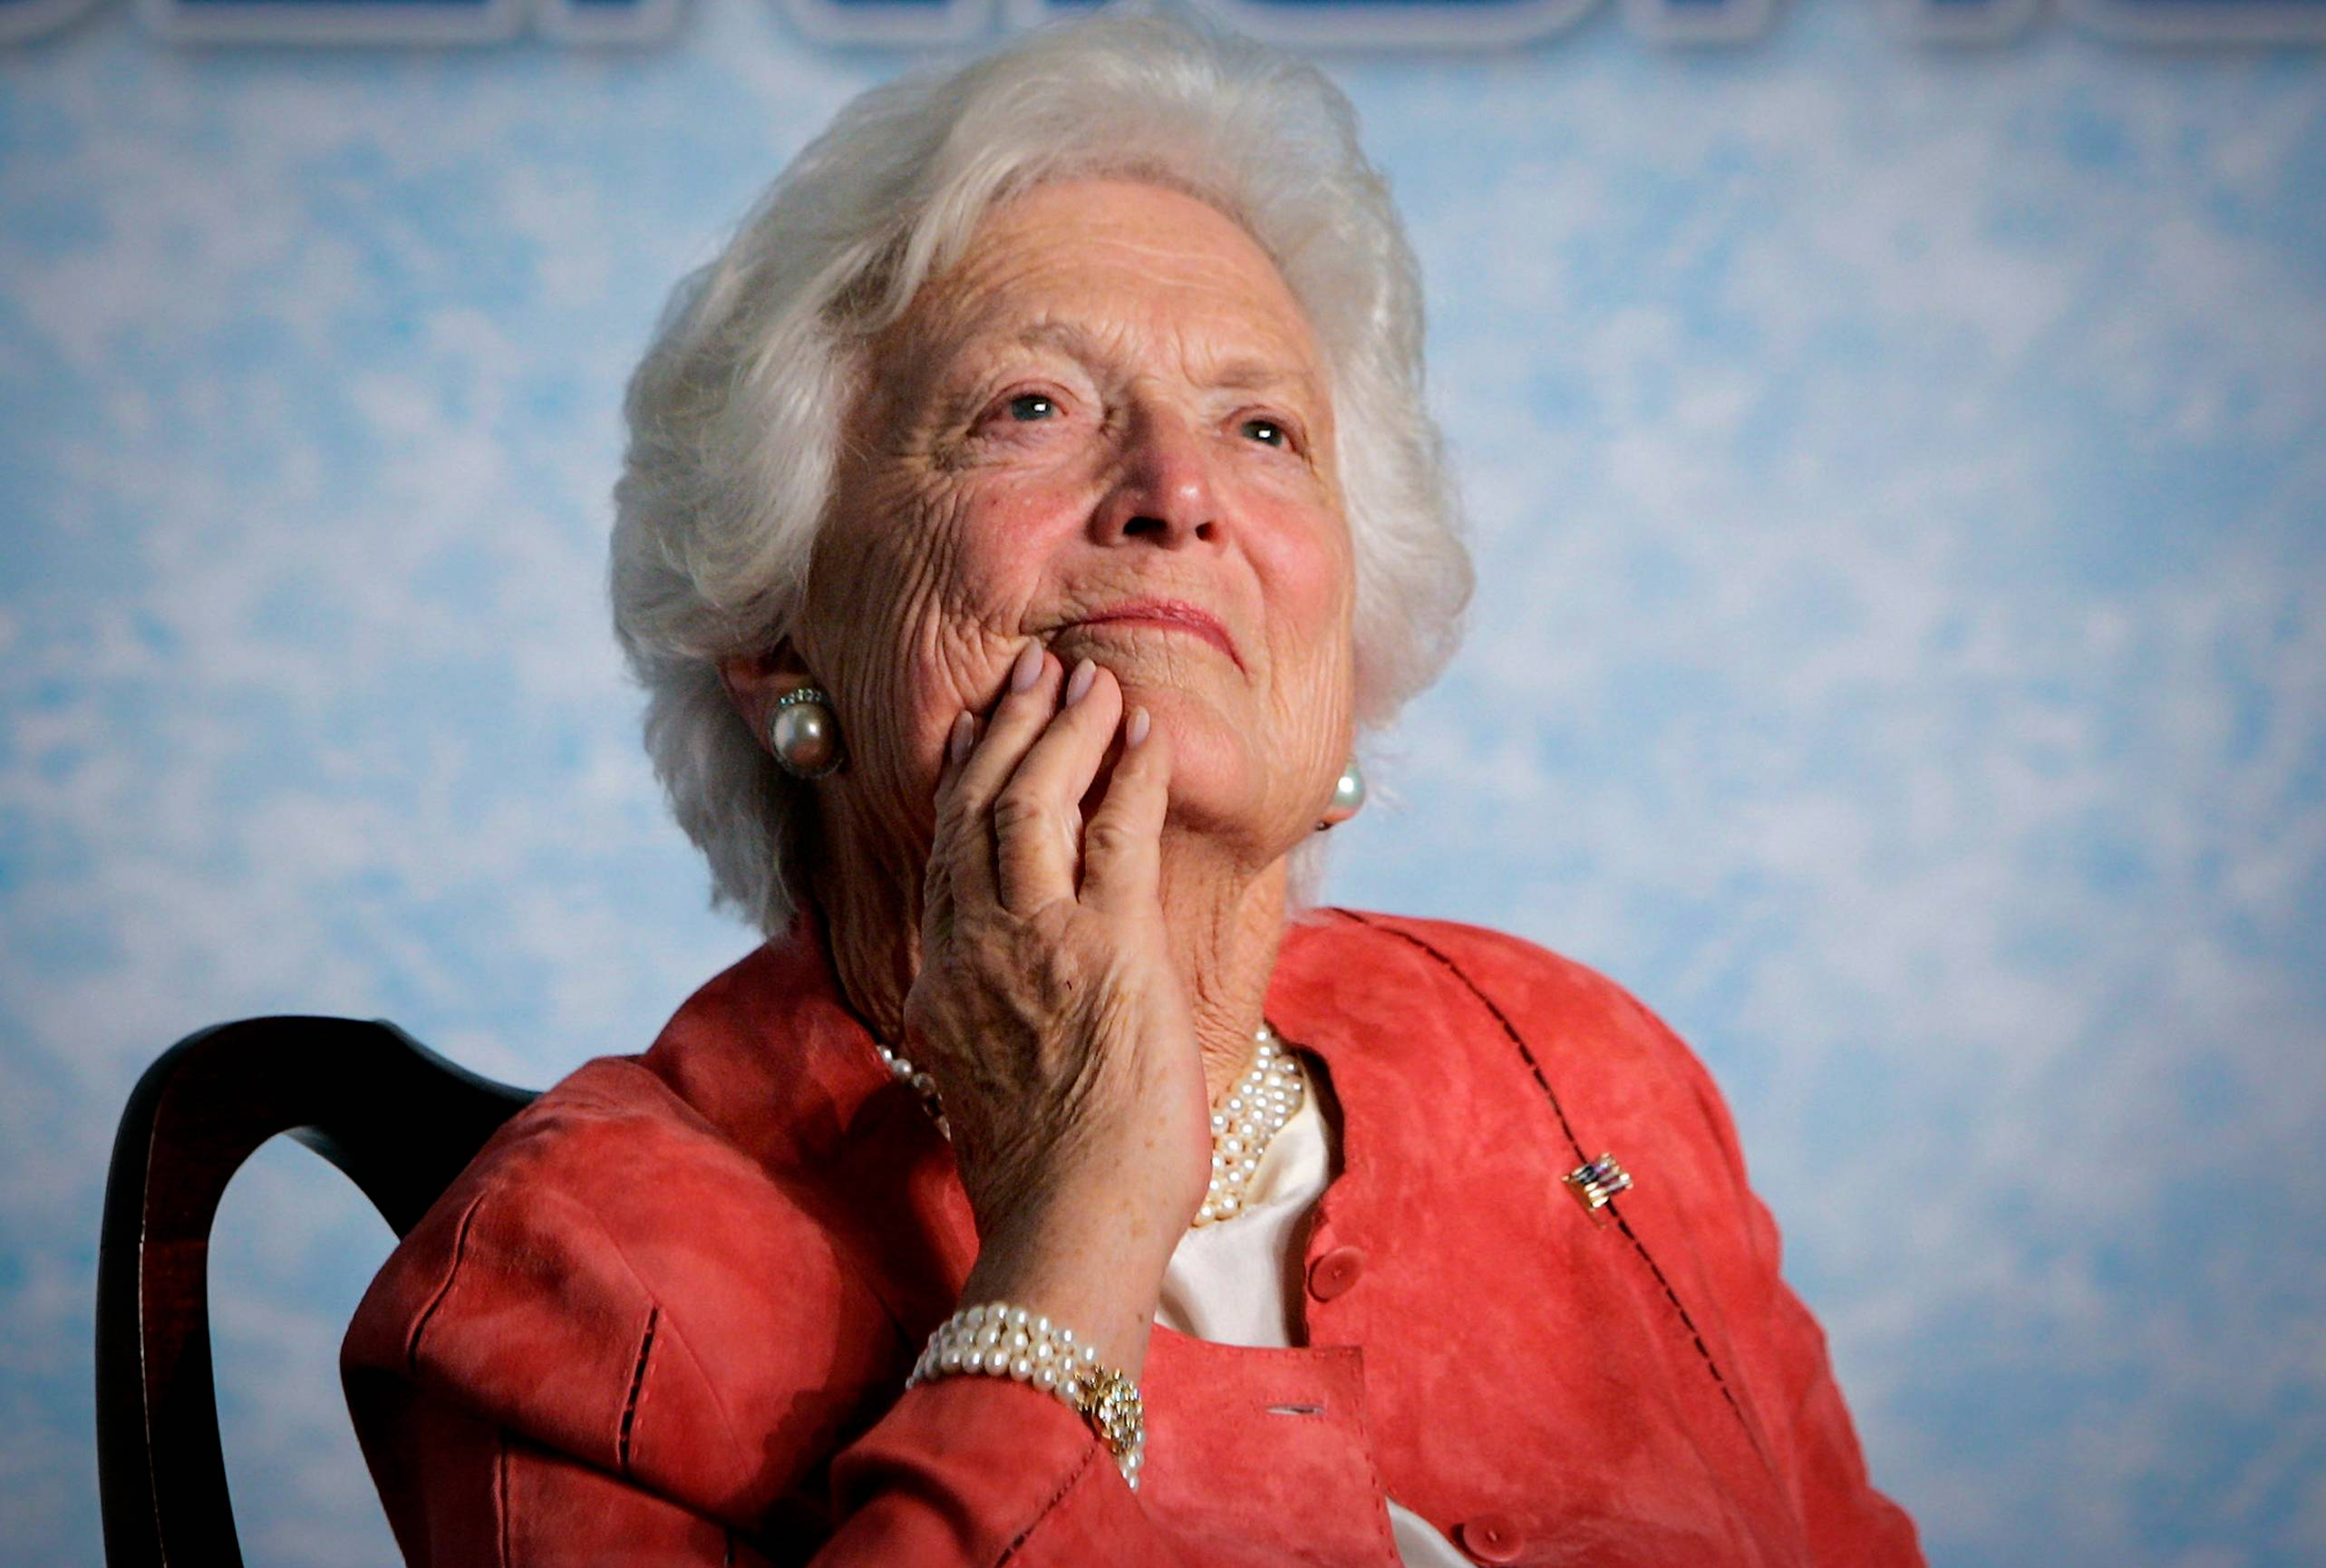 "Former first lady Barbara Bush listens to her son, President George W. Bush, as he speaks on Social Security reform in Orlando, Fla. The wife of former President George H.W. Bush is in ""failing health,"" a Bush family spokesman said Sunday, April 15, 2018, following a recent series of hospitalizations and after consulting with her family and doctors, the 92-year-old former first lady has decided not to seek additional medical treatment and will instead focus on comfort care."